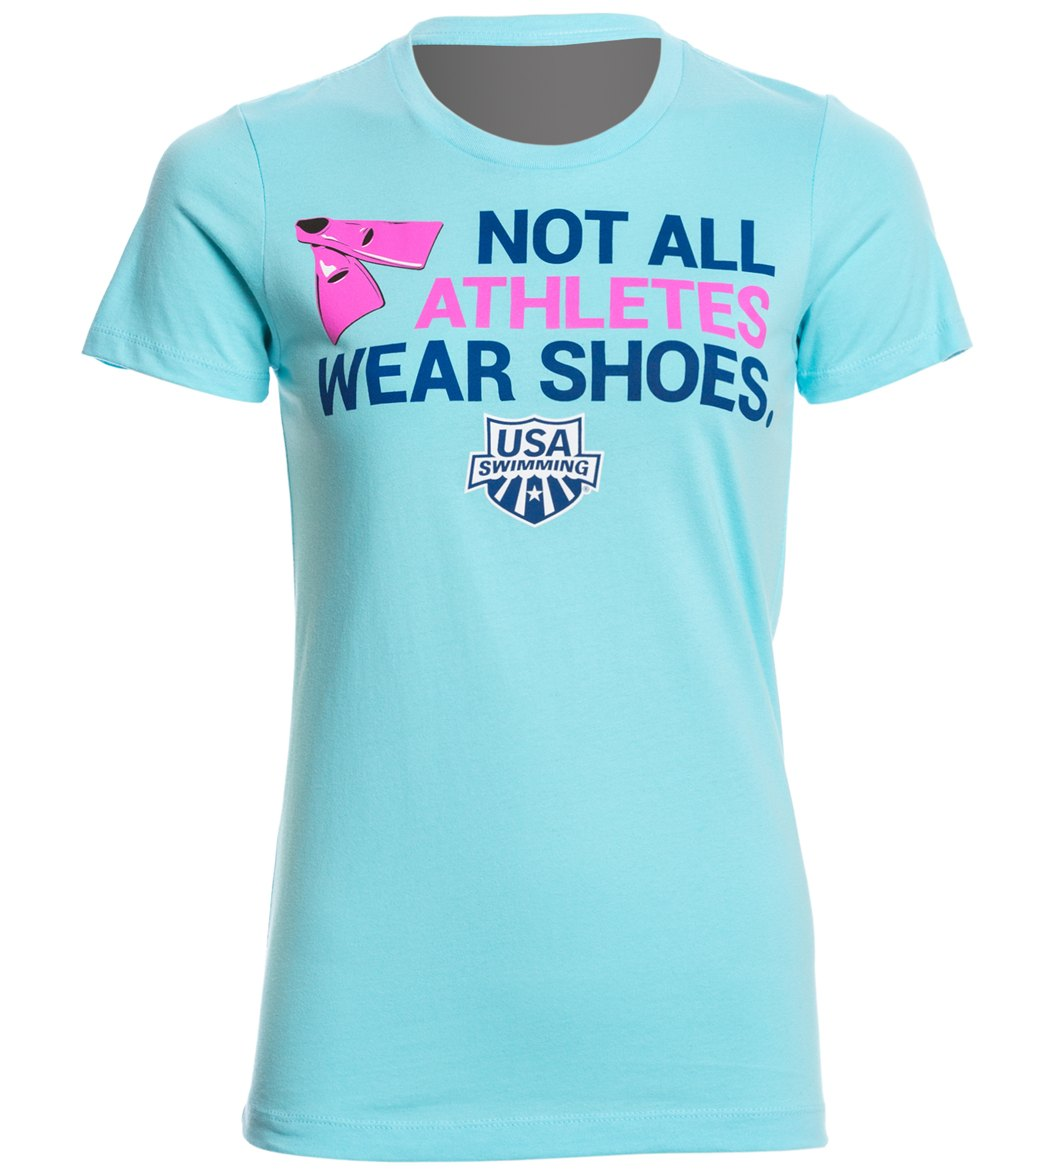 Usa swimming women 39 s athletes crew neck t shirt at for Wearing t shirt in swimming pool